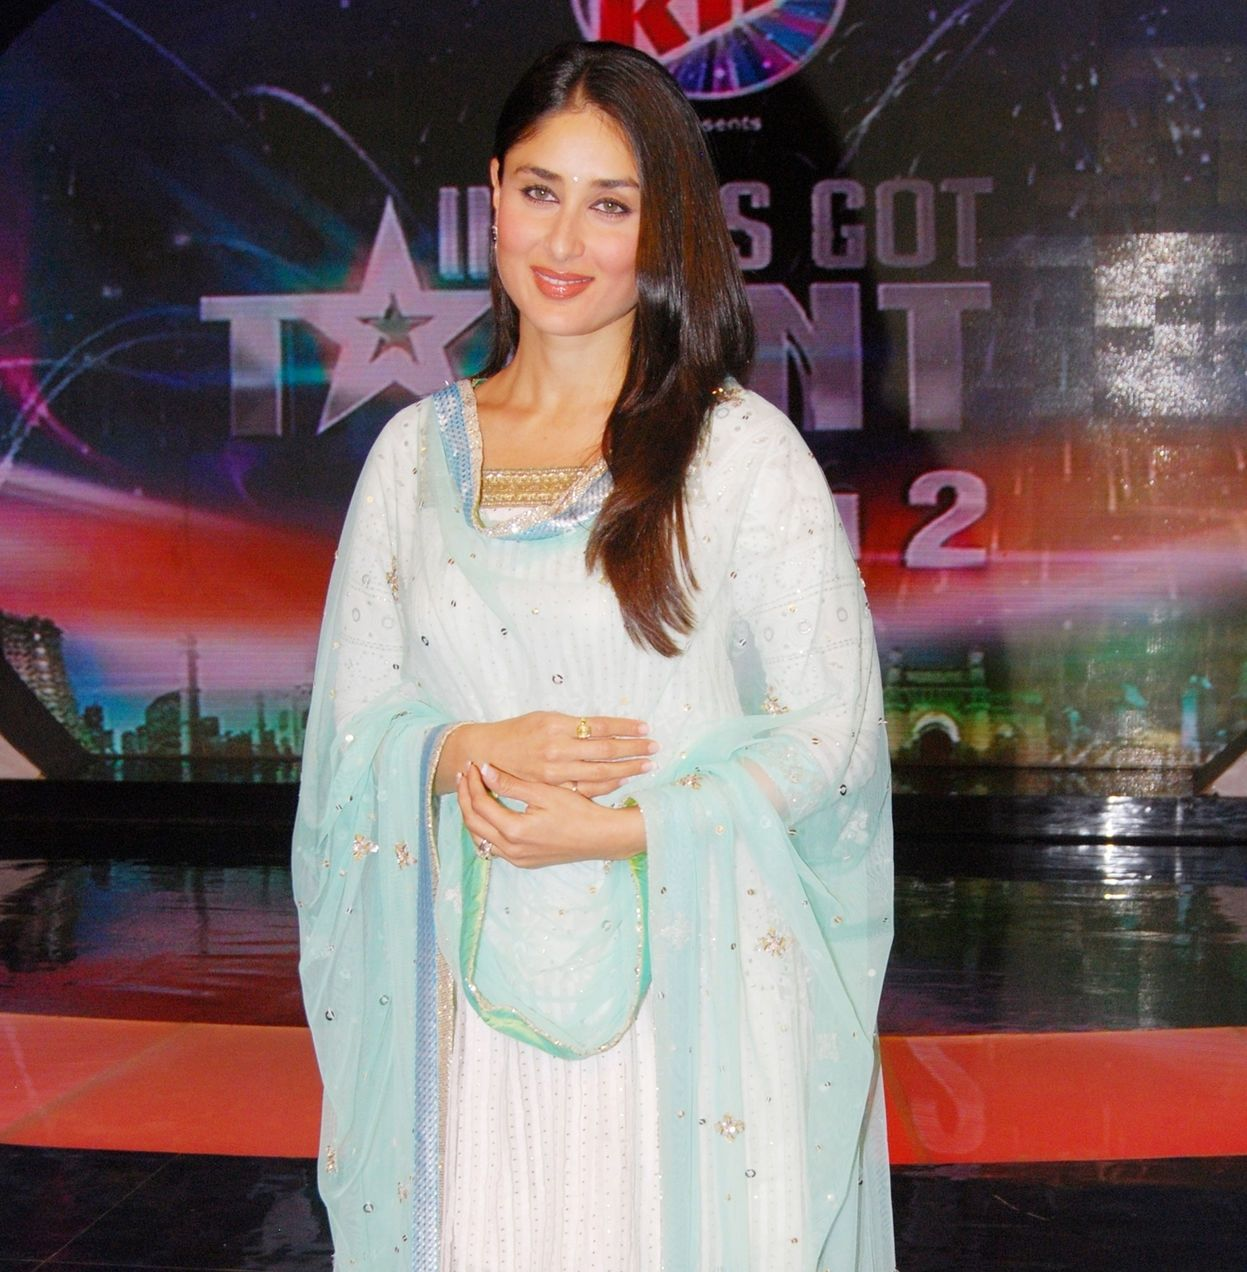 Kareena Kapoor Biography Age Family Latest Hot Photos 2020, Photos, Videos, Full Movie Watch Online Free Down Load Leaked By Tamilrockers, Down Load Torrent Telegram File Link